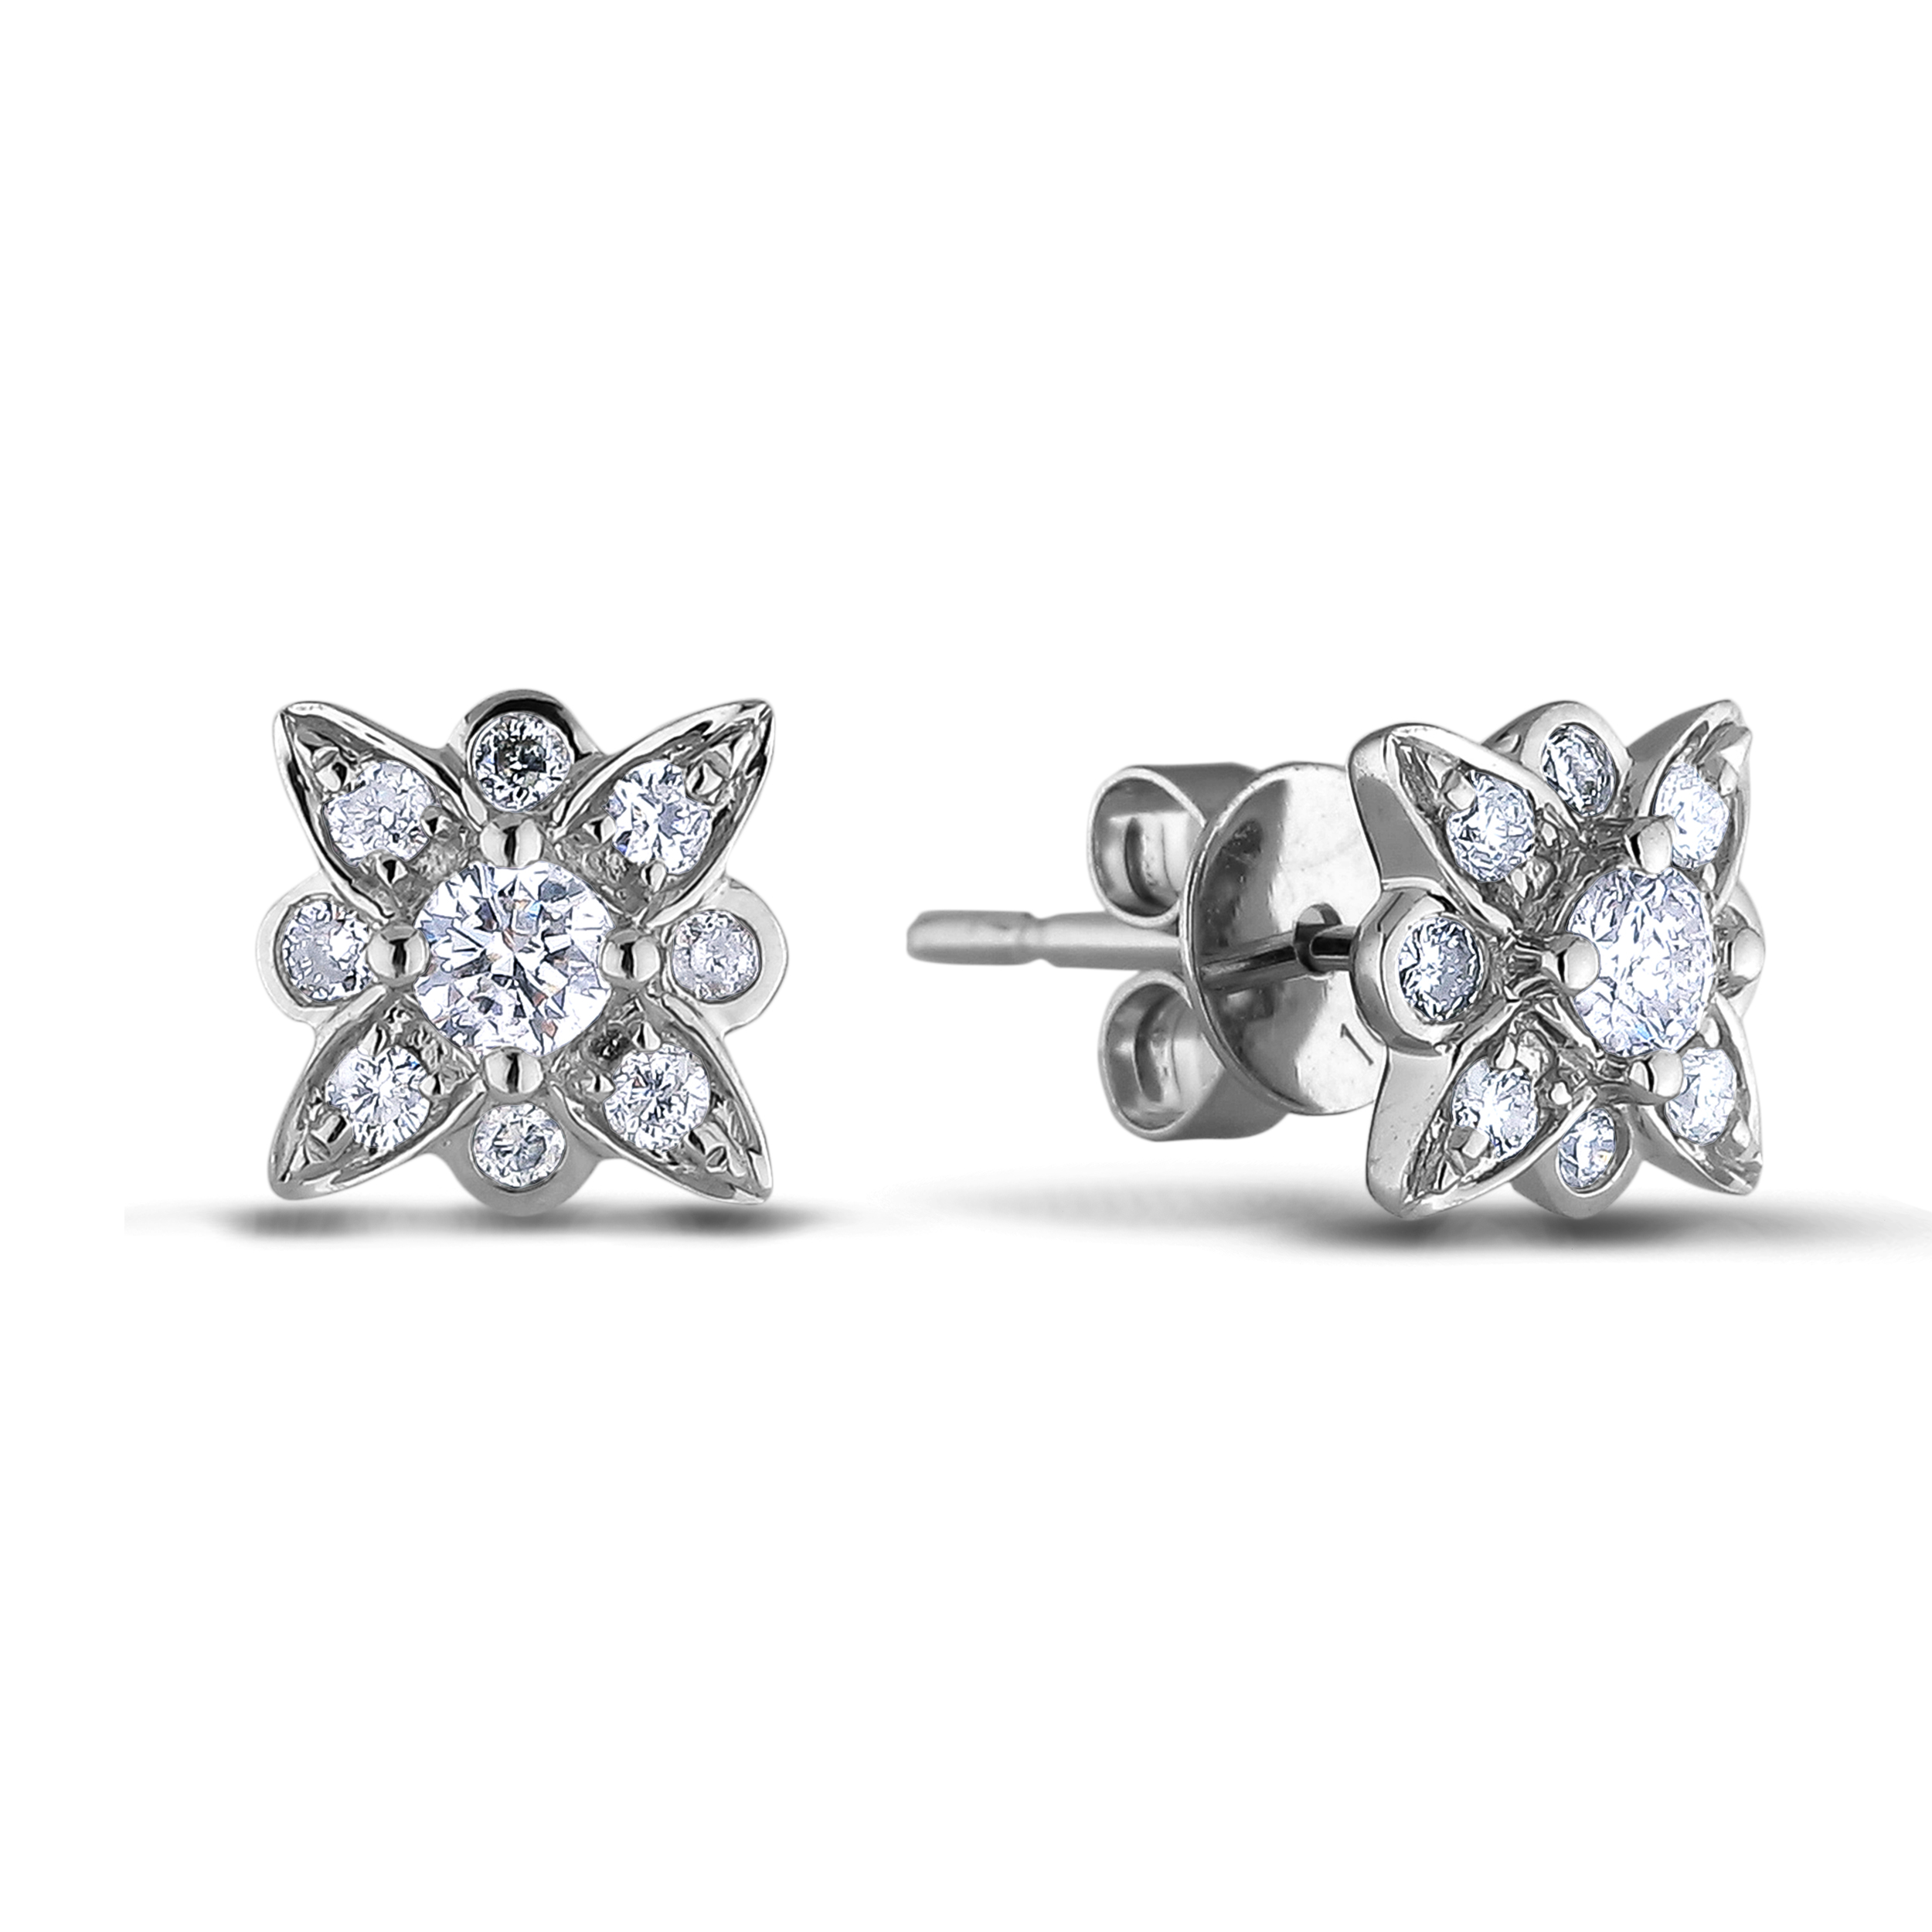 Diamond Stud Earrings SGE342 (Earrings)